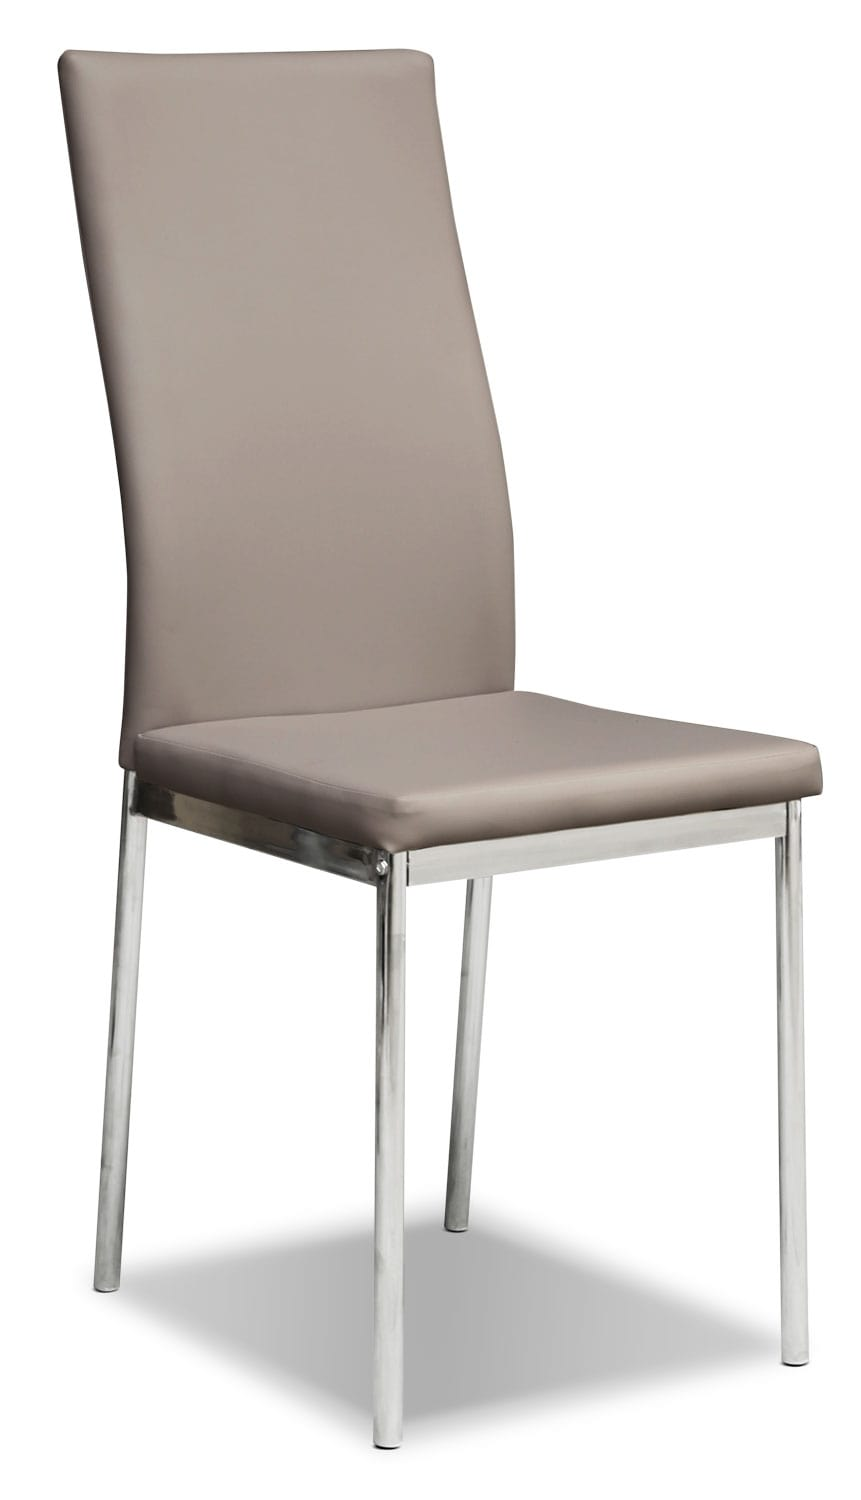 Dining Room Furniture - Koda Dining Chair - Taupe